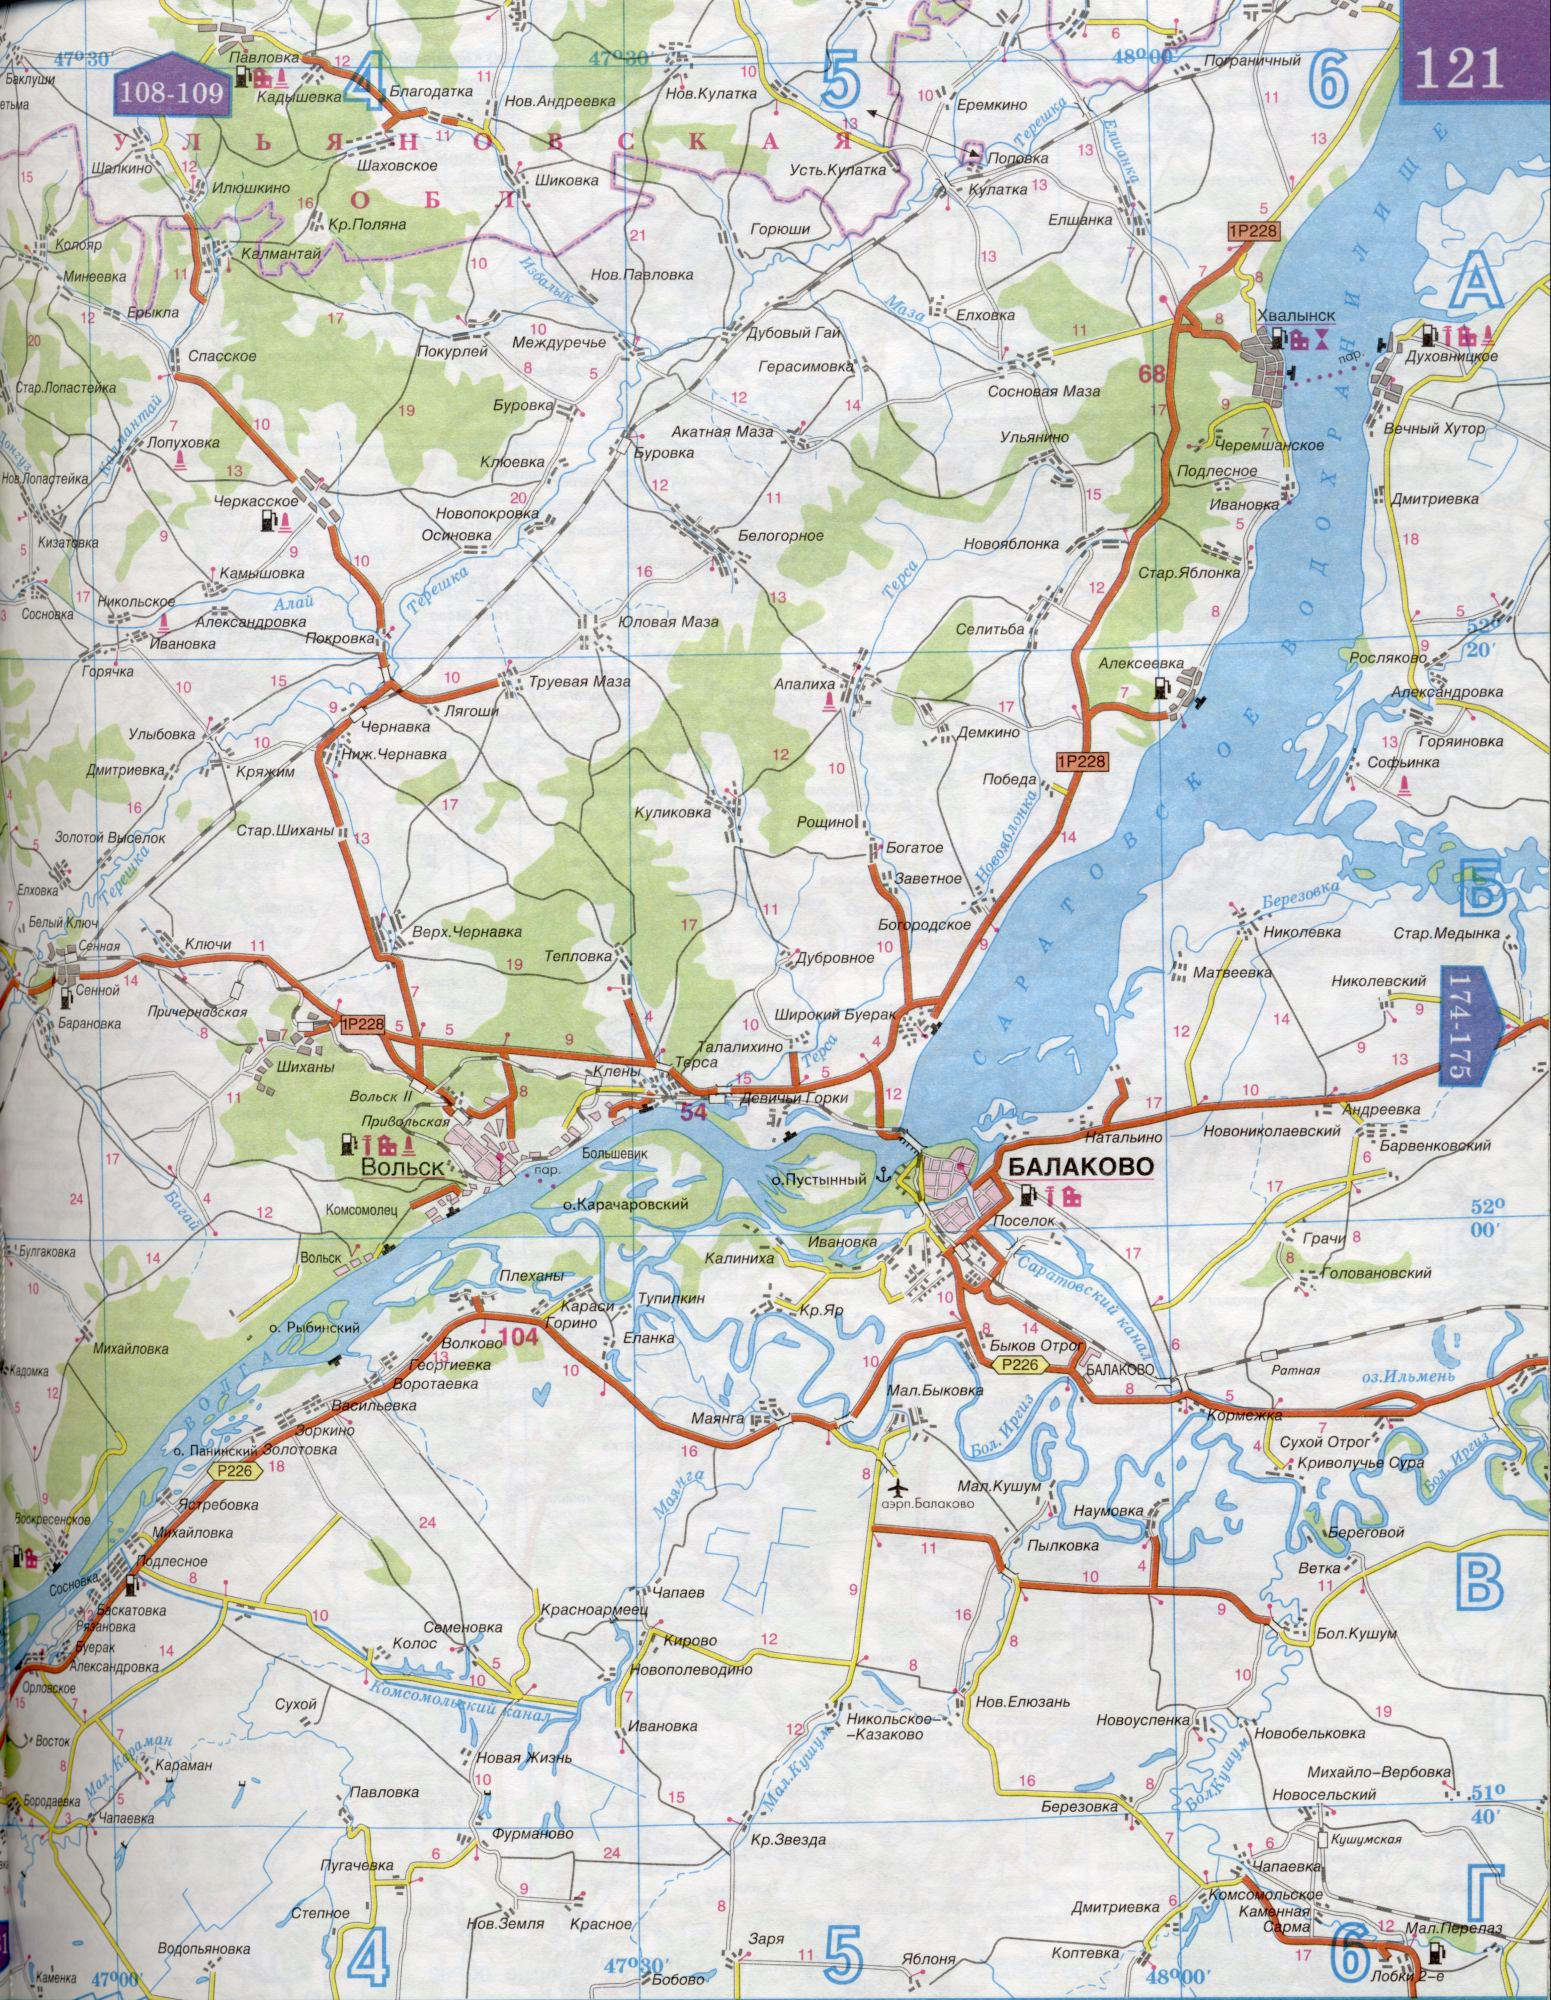 Road Map Of Russia Garmin Download For Free - bablflip